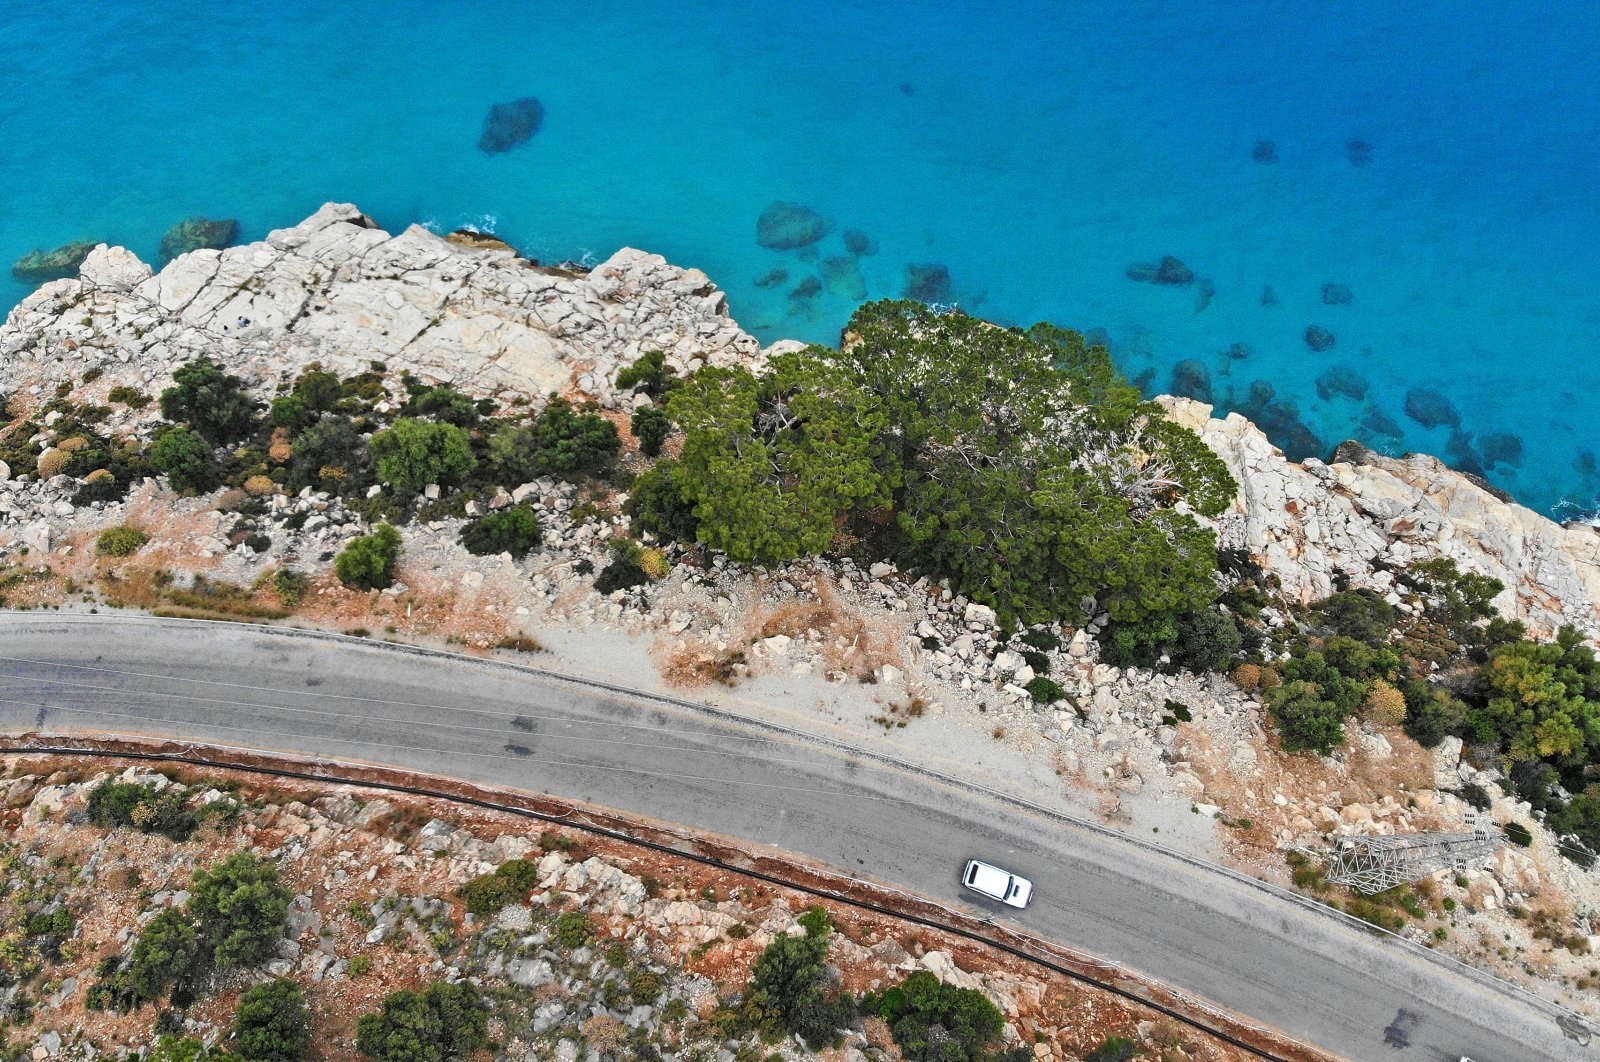 If you are planning to spend your bayram holiday in the Mediterranean or Aegean, try to take the roads less traveled to avoid crowds. (iStock Photo)